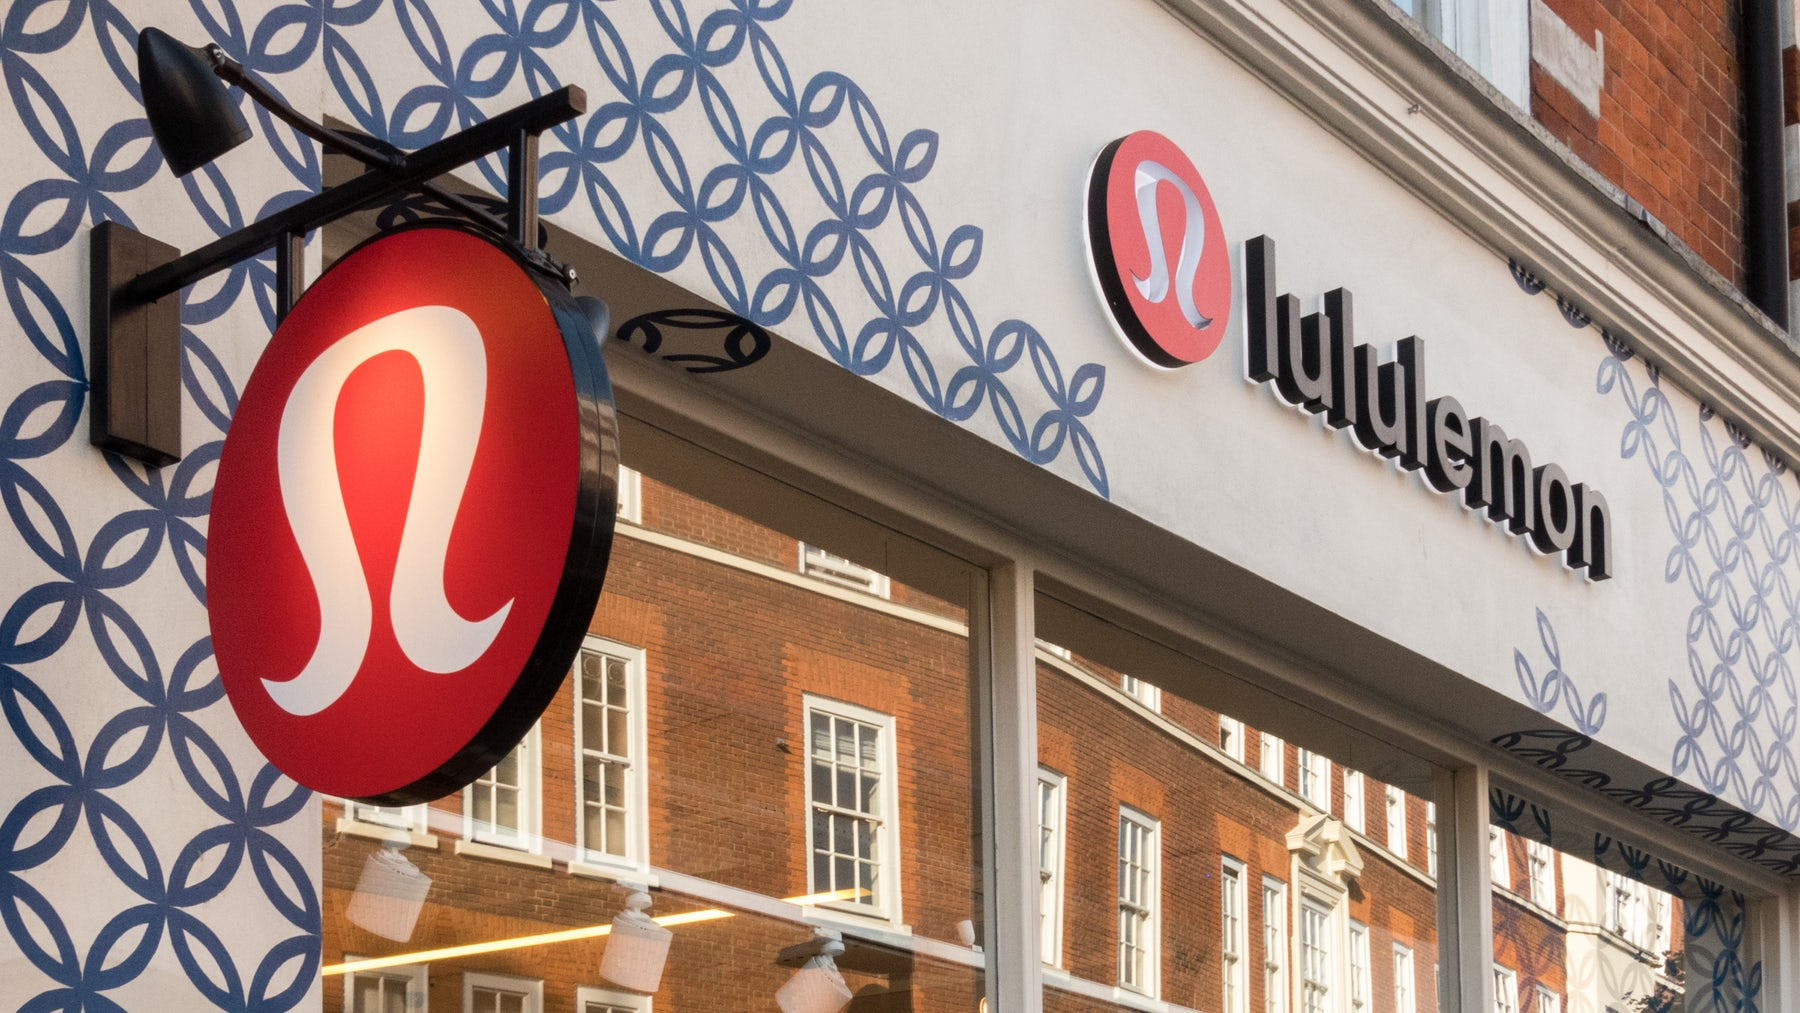 Lululemon store in London | Source: Shutterstock